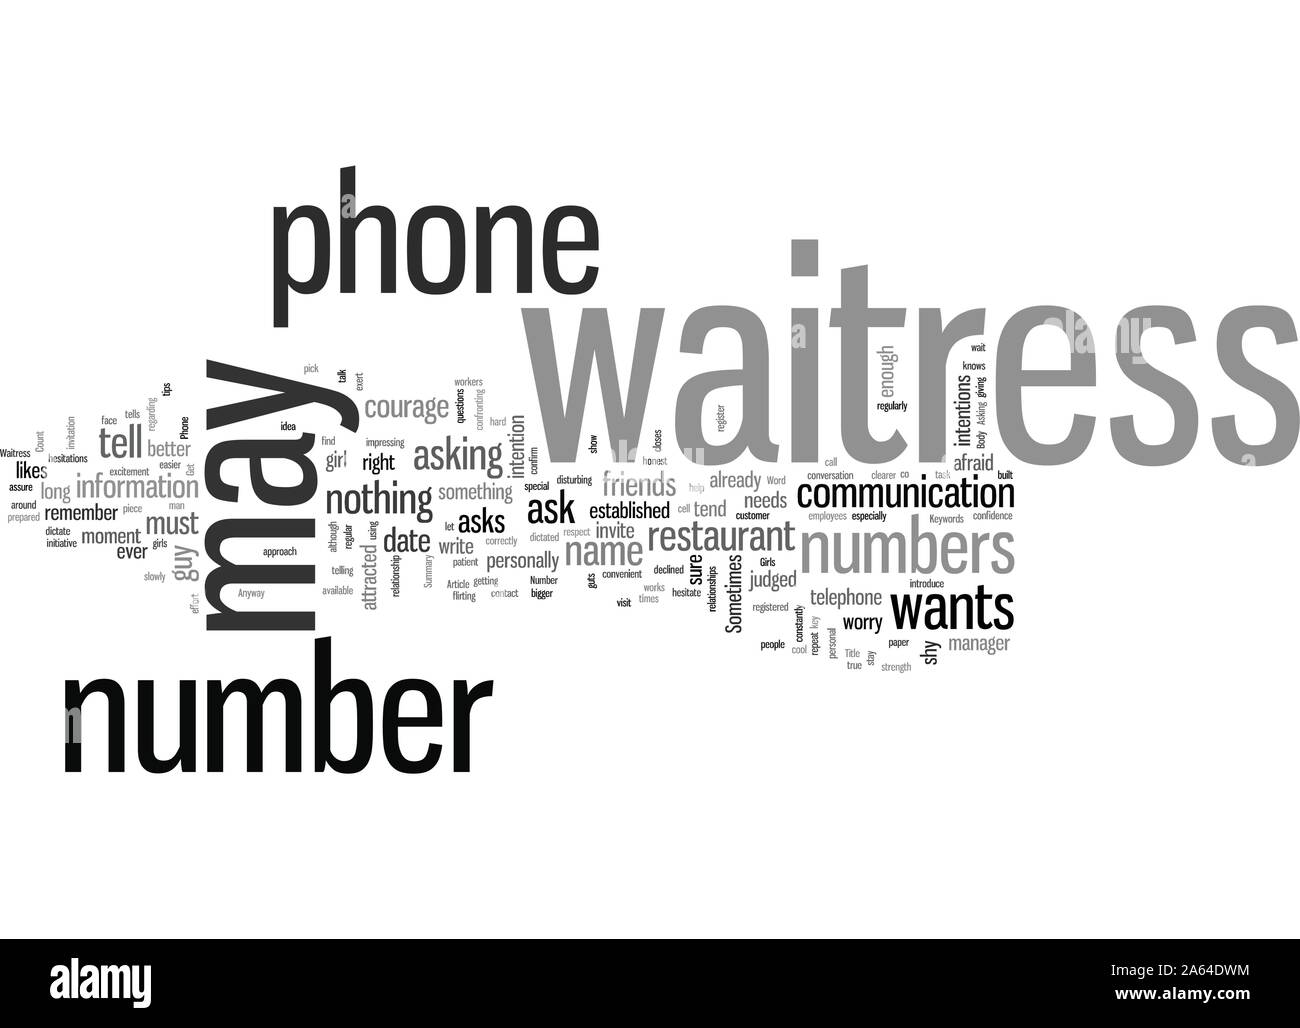 How To Get A Waitress Phone Number Stock Vector